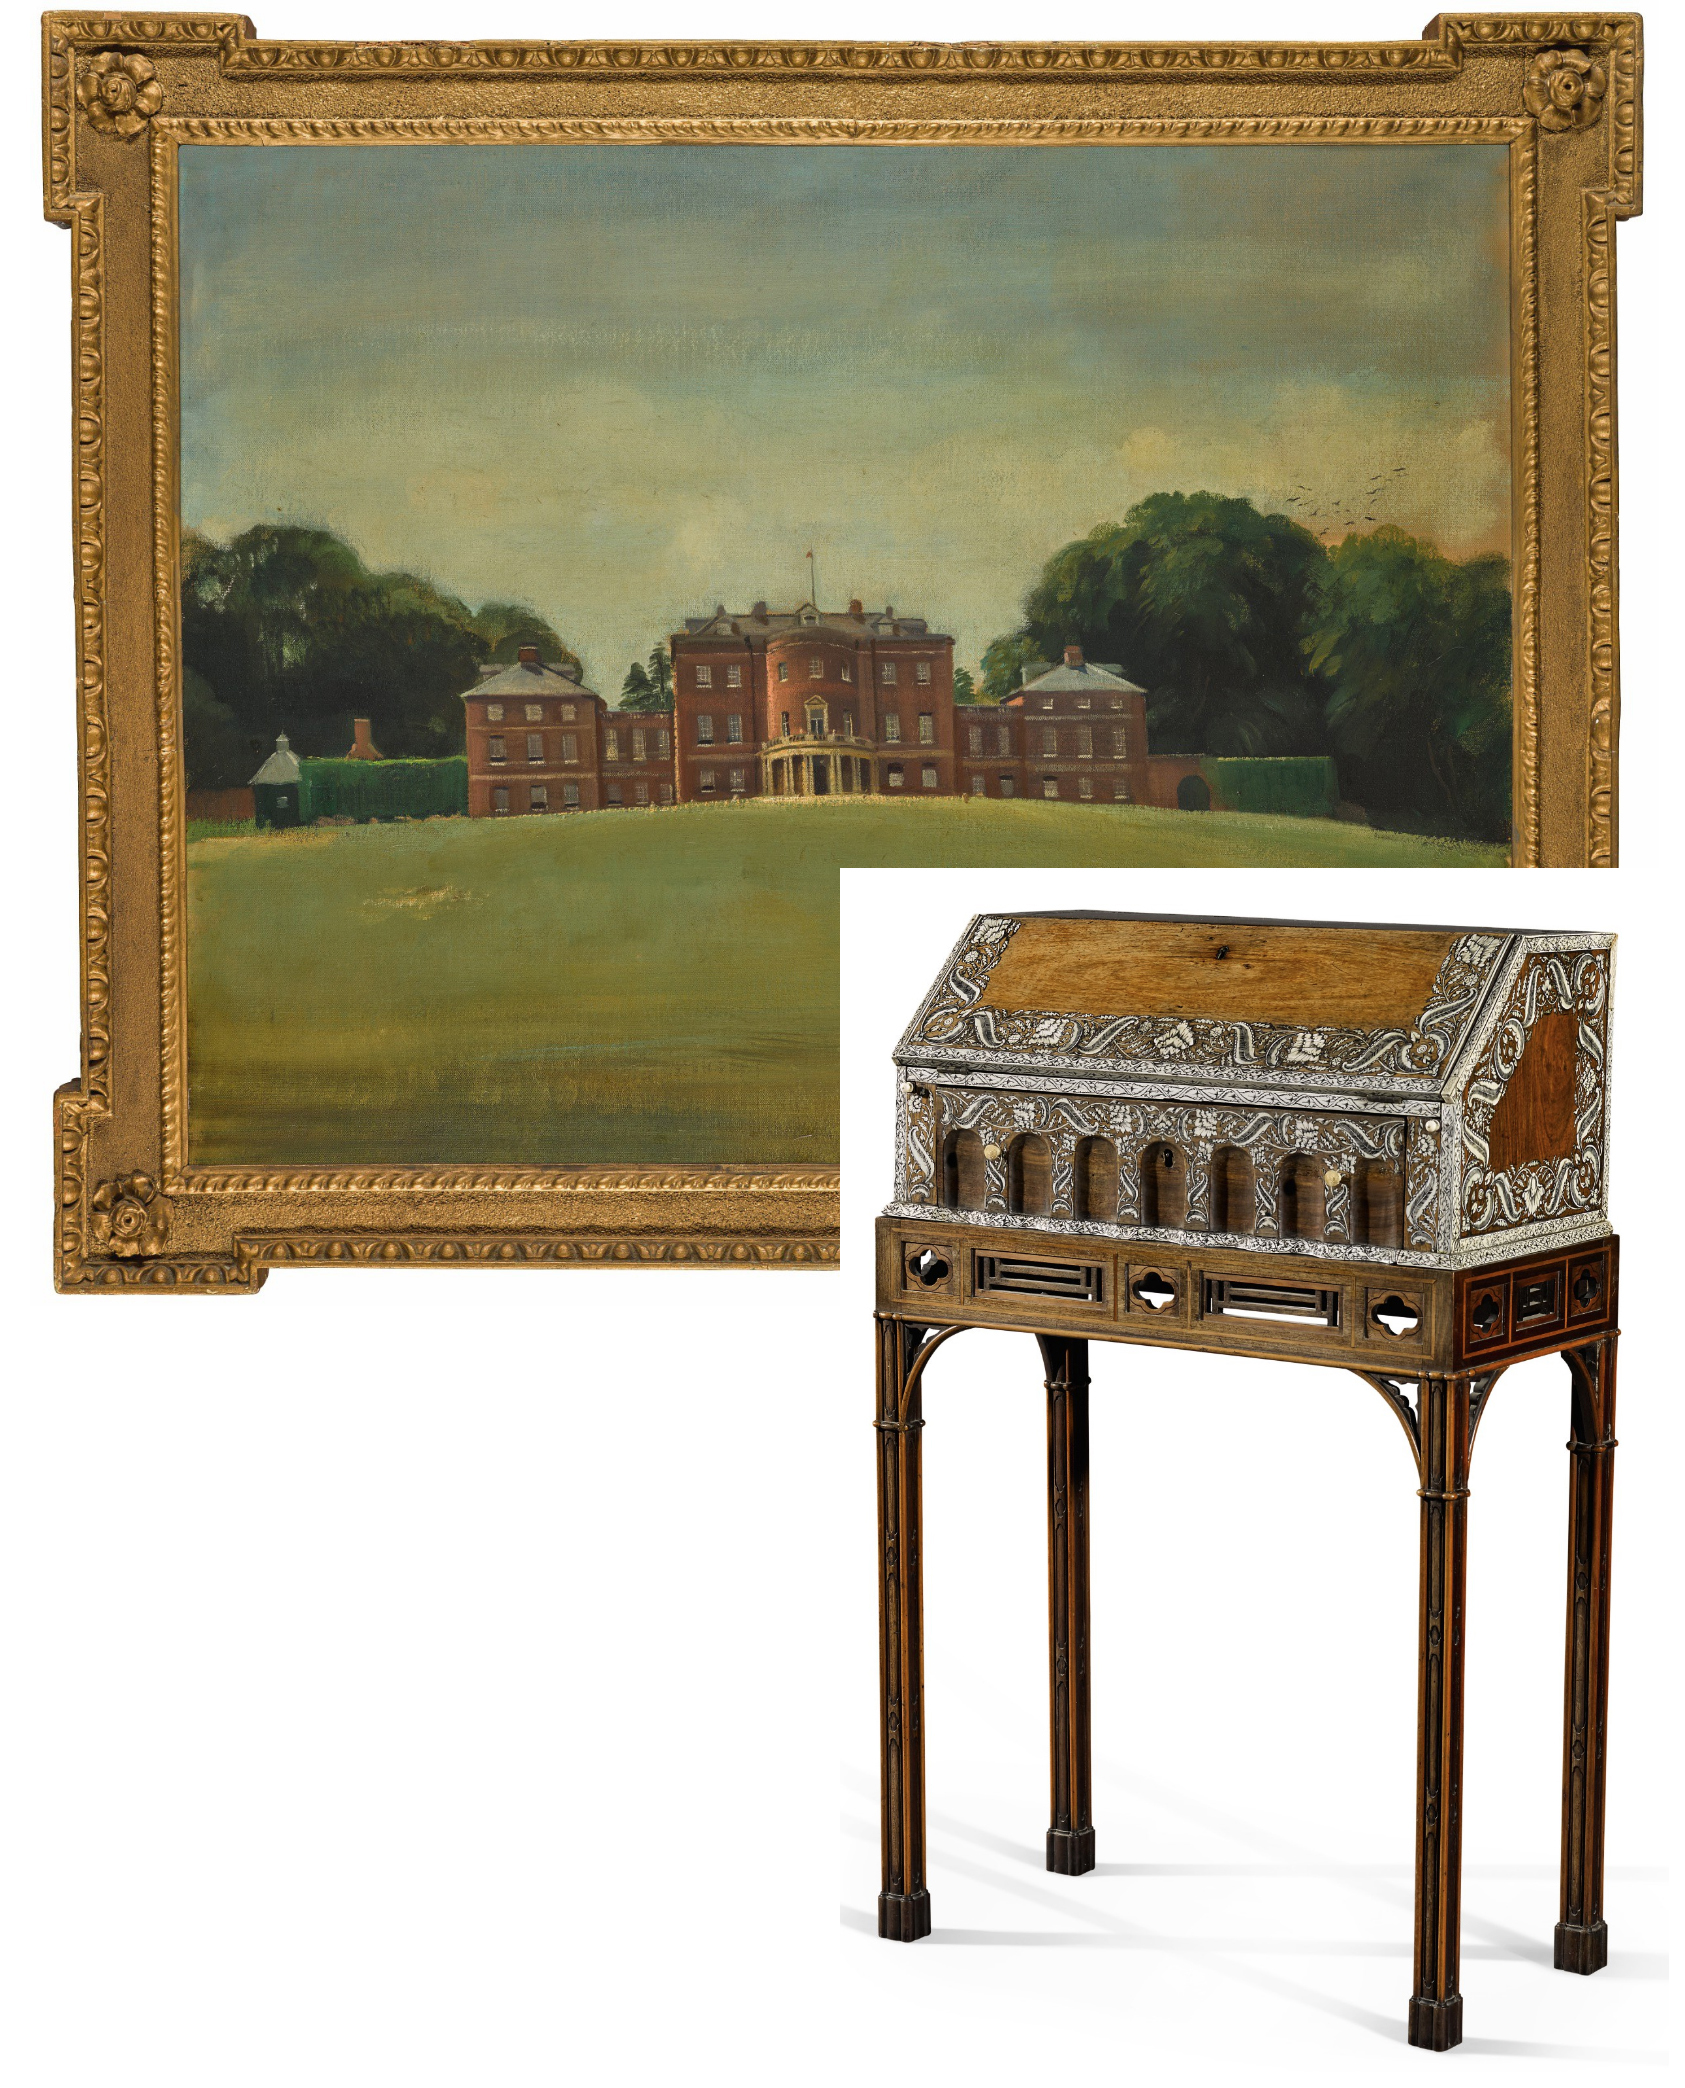 35 Mersham le Hatch Sir Oswald Birley & stand by Chippendale Sotheby s 24Mar2021 Lot99